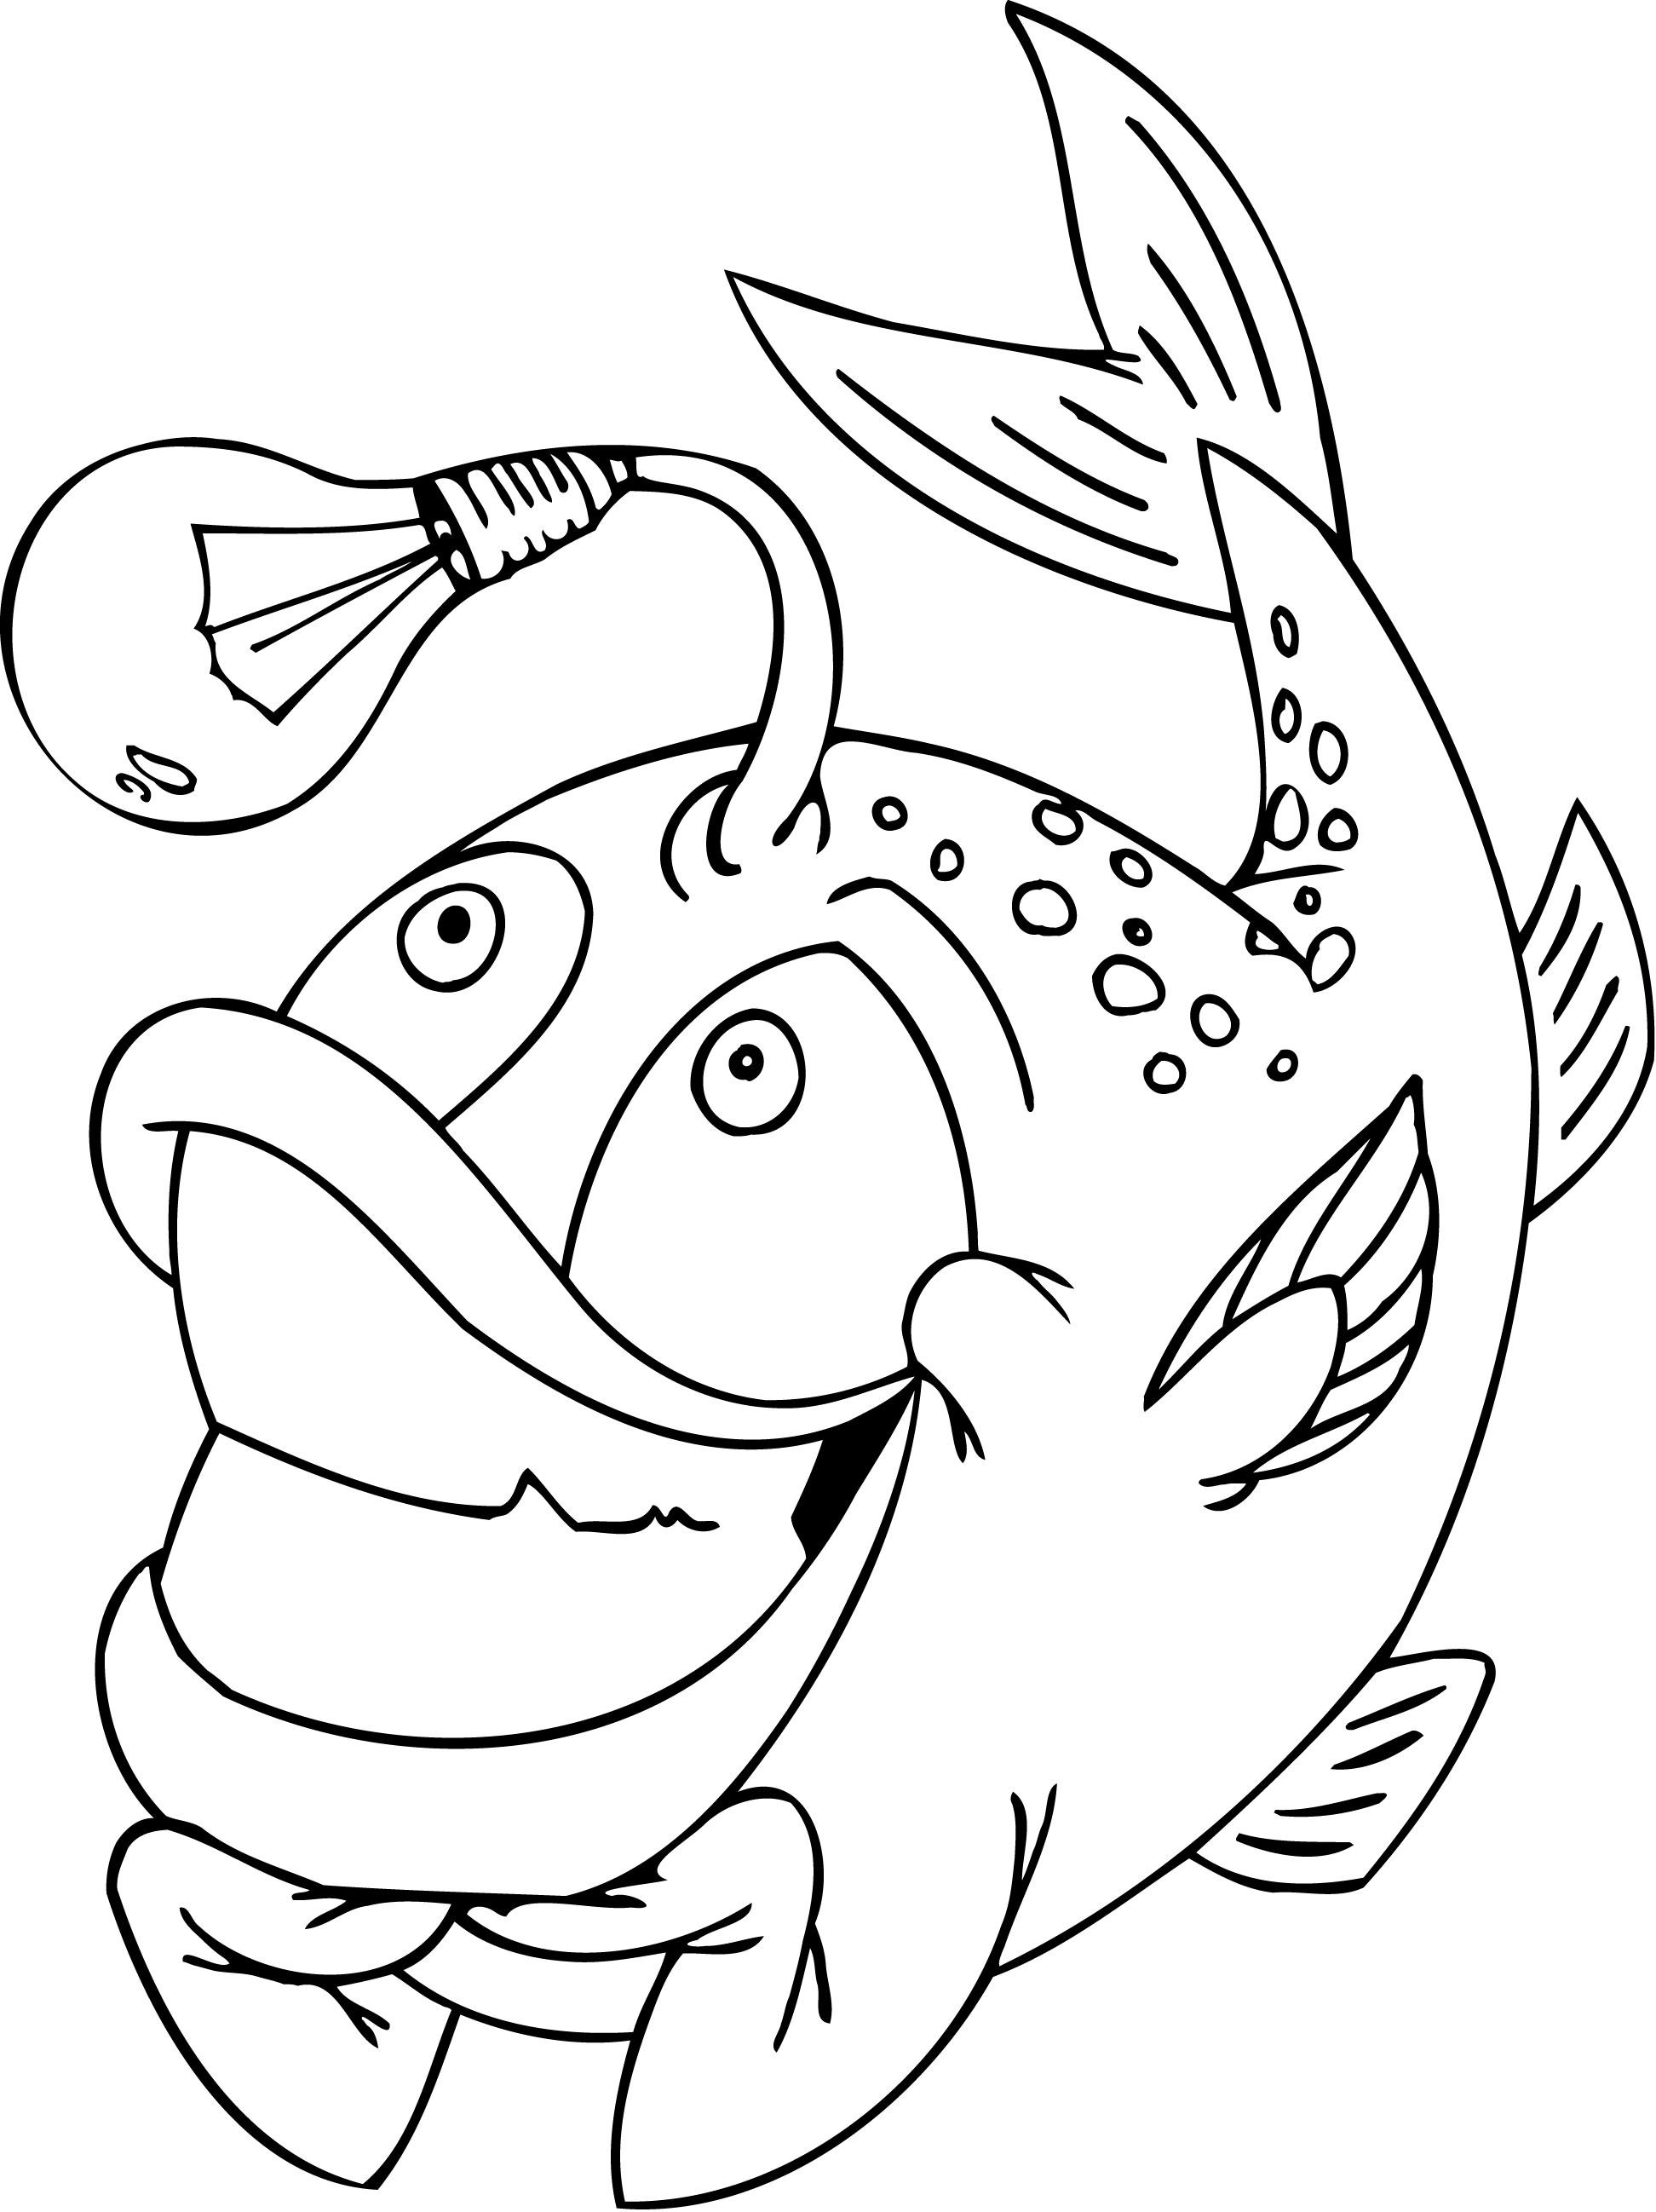 Best ideas about Fun Printable Coloring Pages For Adults . Save or Pin Free Printable Funny Coloring Pages For Kids Now.